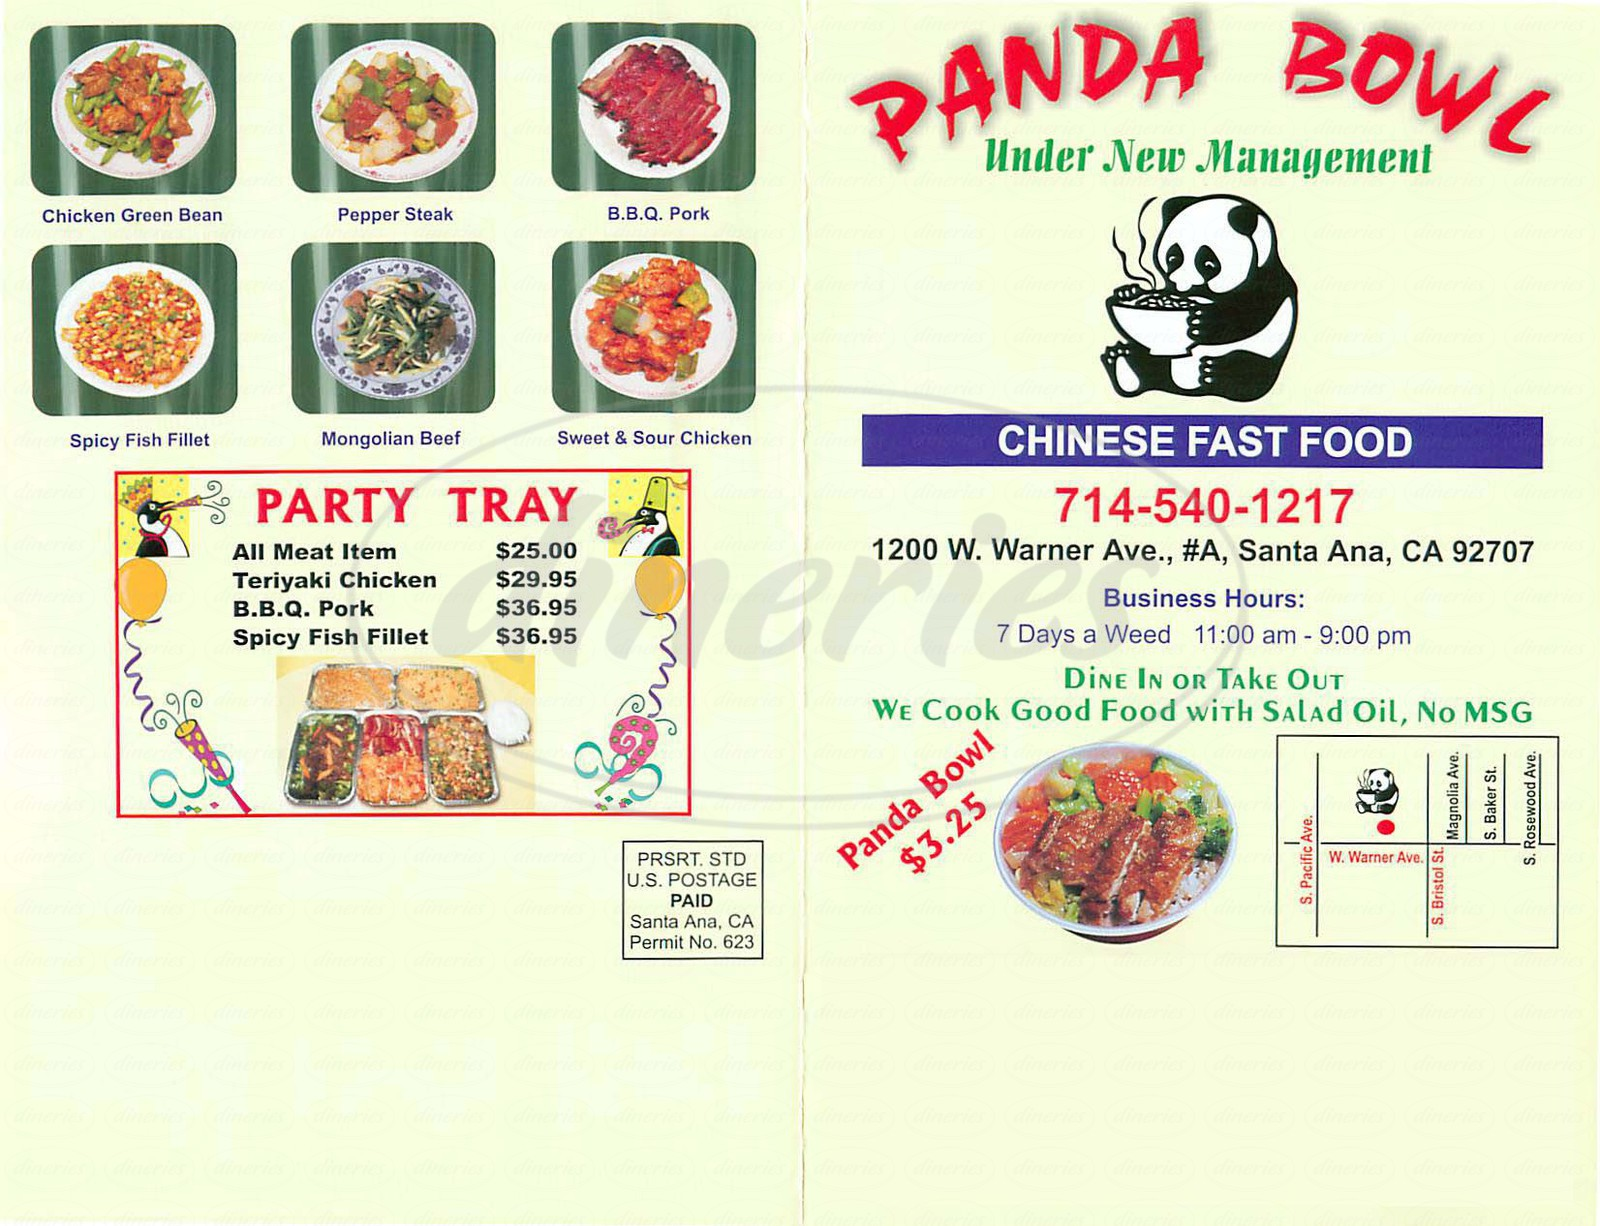 menu for Panda Bowl